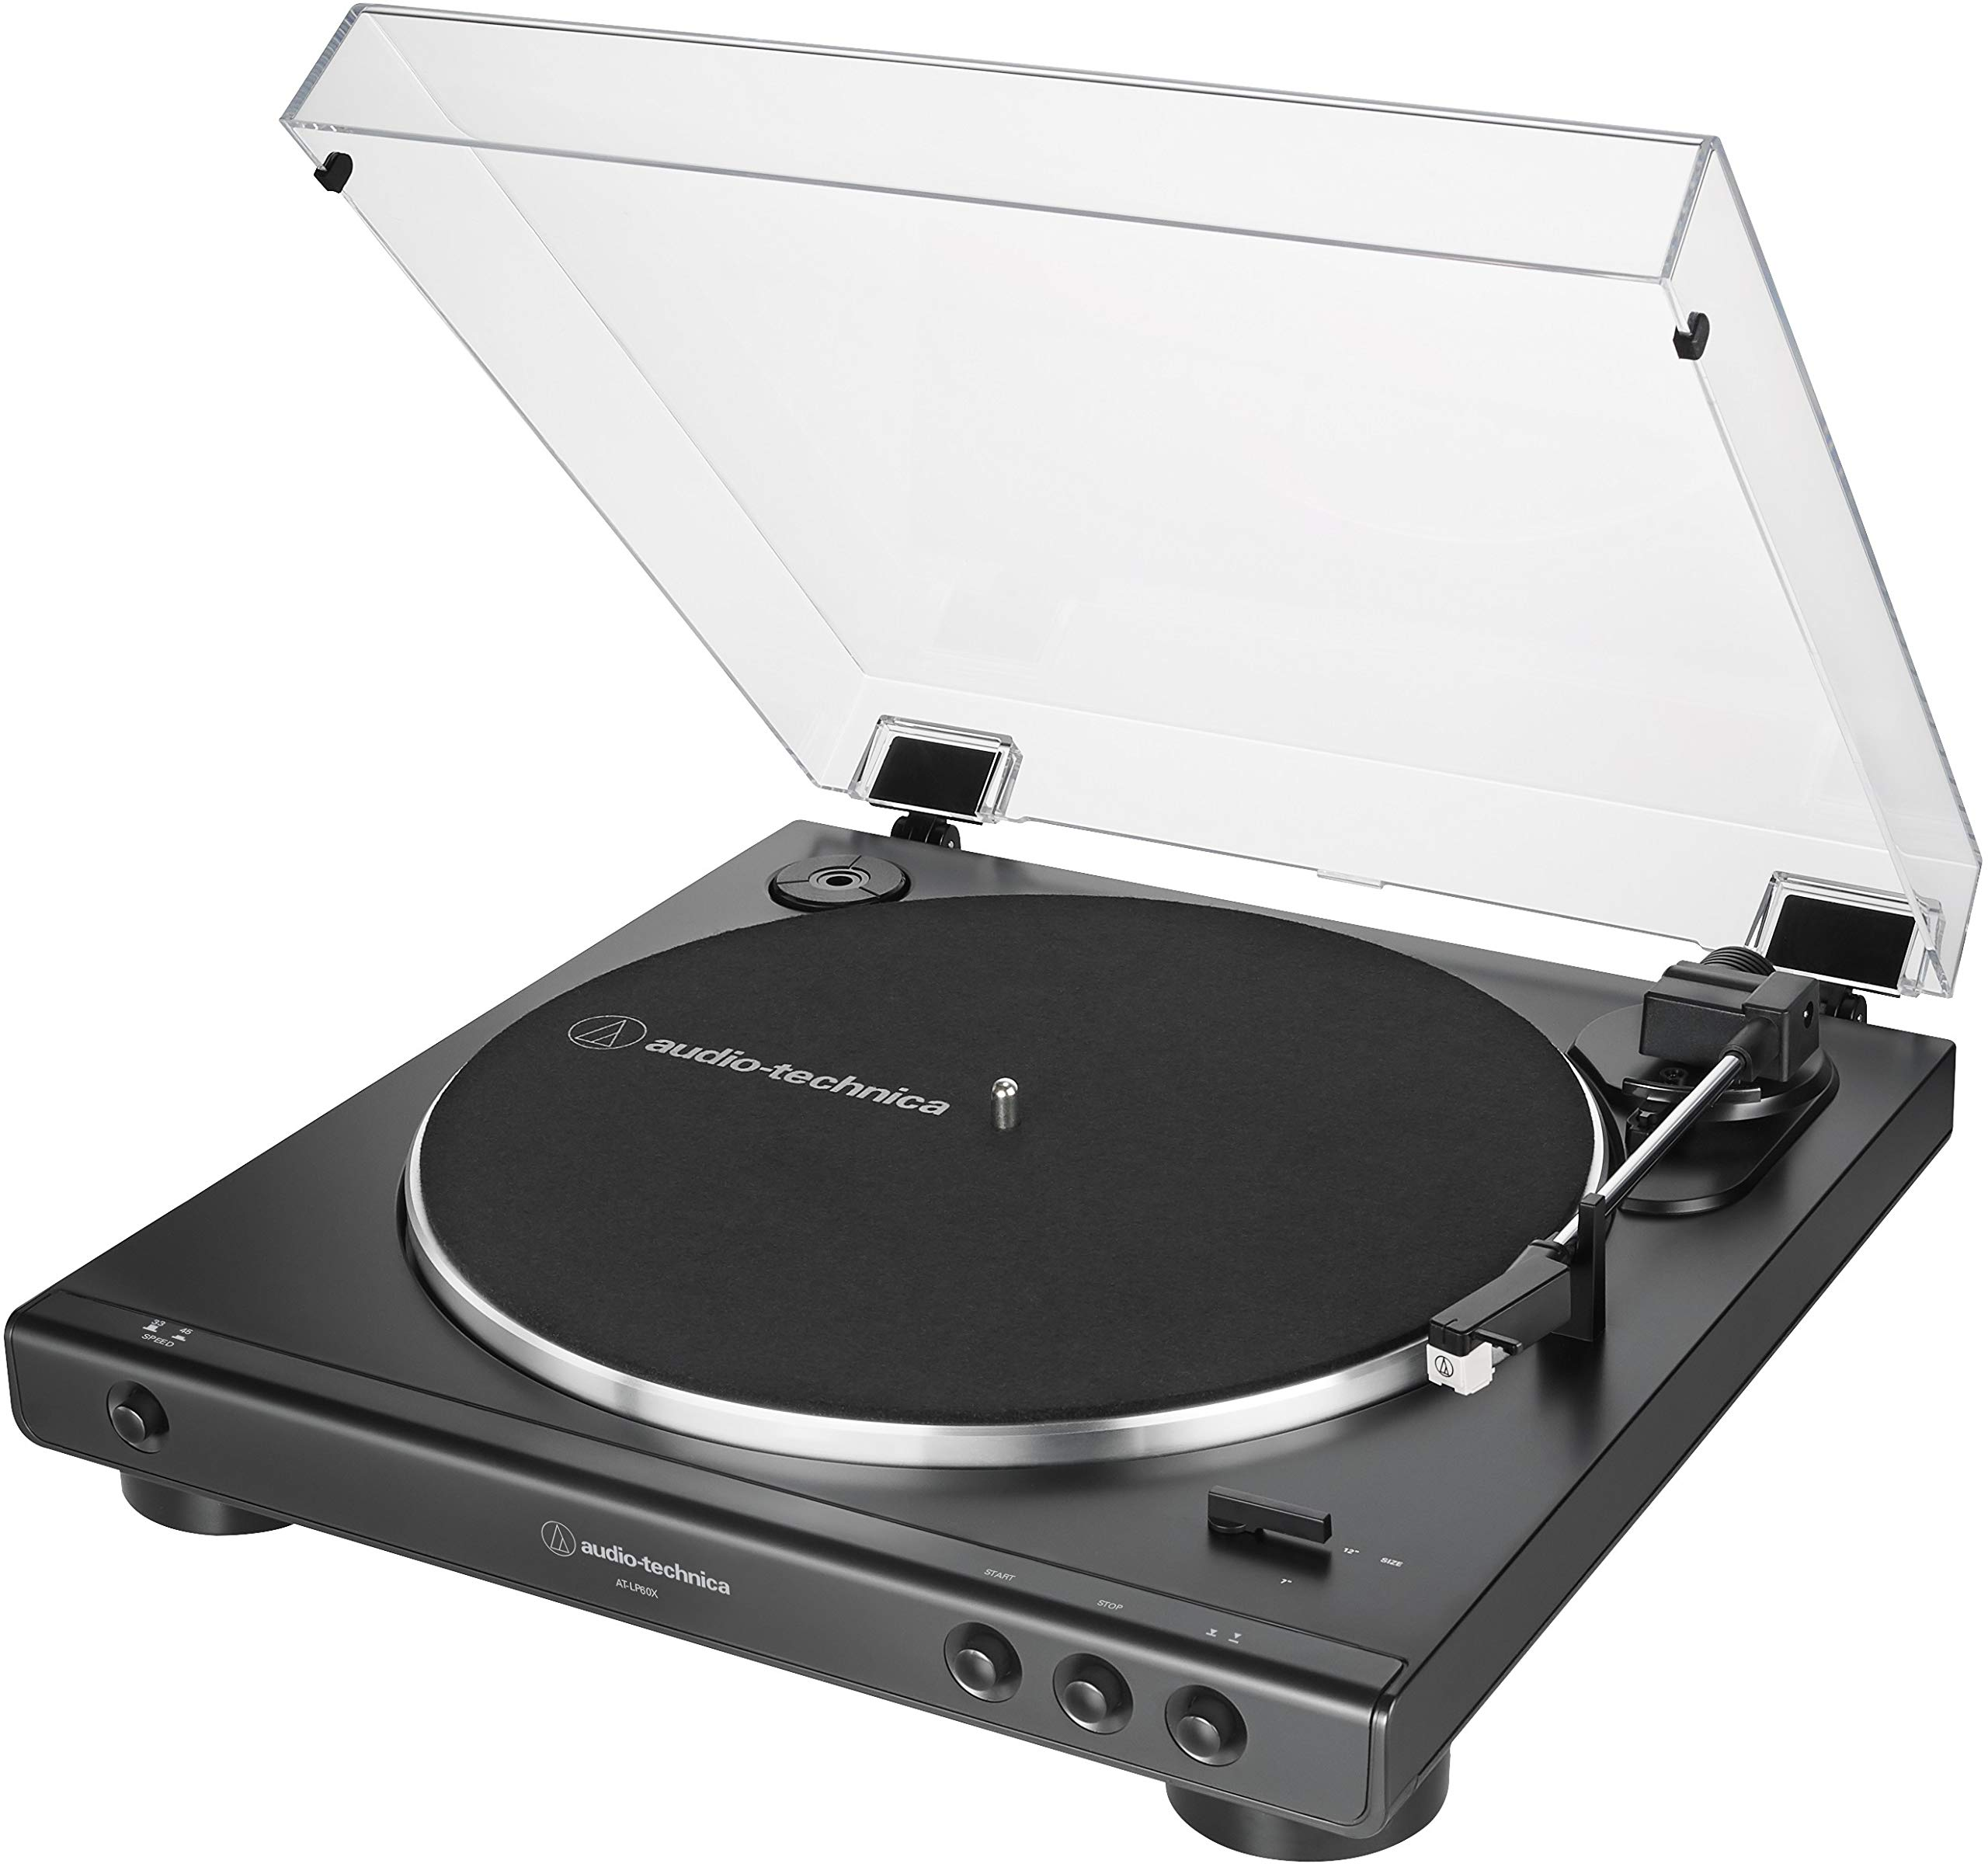 Audio-Technica AT-LP60X-BK Fully Automatic Belt-Drive Stereo Turntable, Black, Hi-Fidelity, Plays 33 -1/3 and 45 RPM Vinyl Records, Dust Cover, Anti-Resonance, Die-Cast Aluminum Platter by Audio-Technica